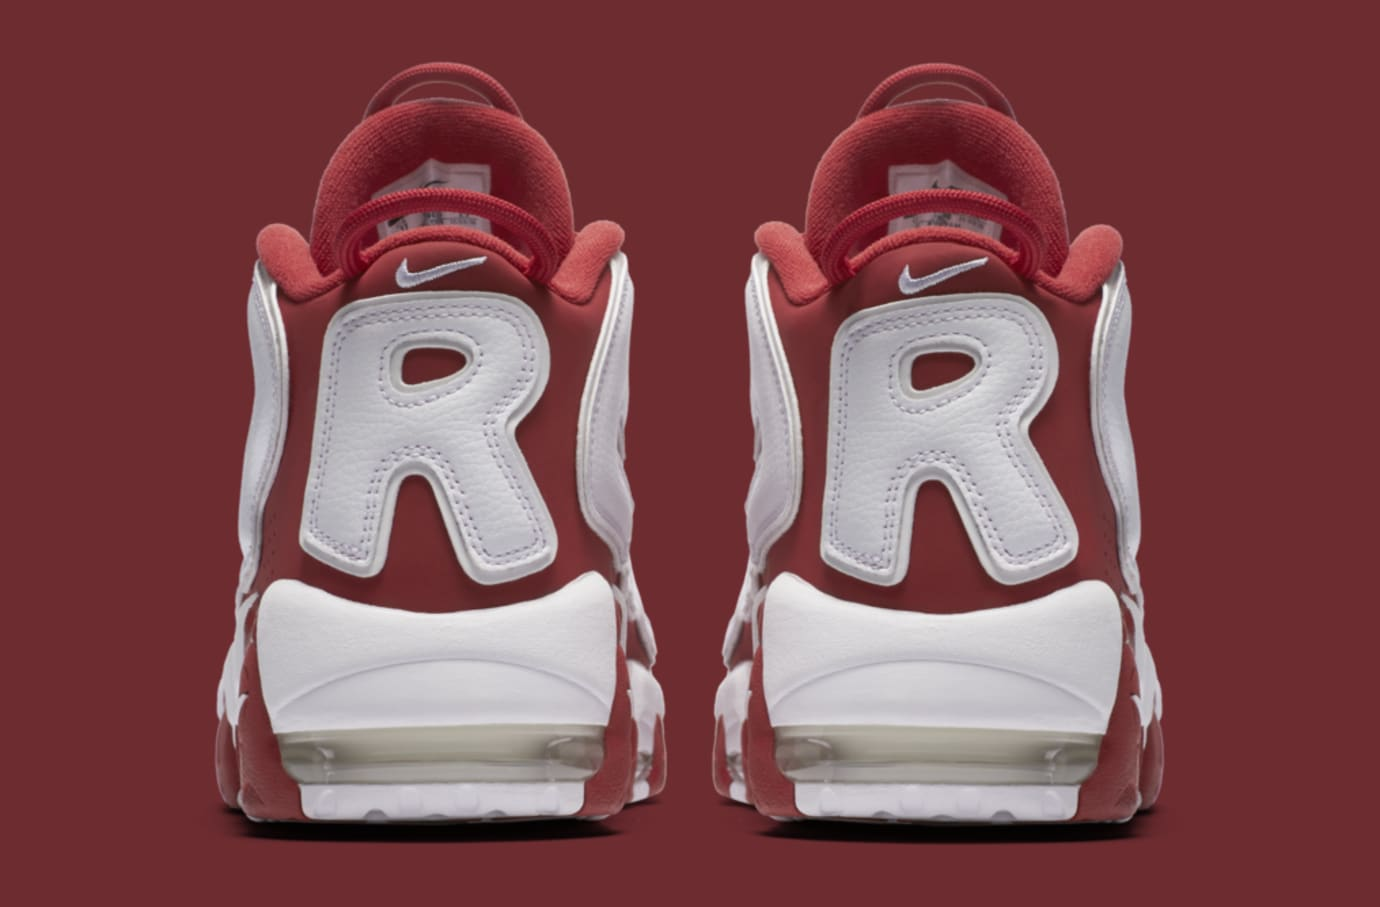 Red Supreme Nike Air More Uptempo 902290-600 Heel